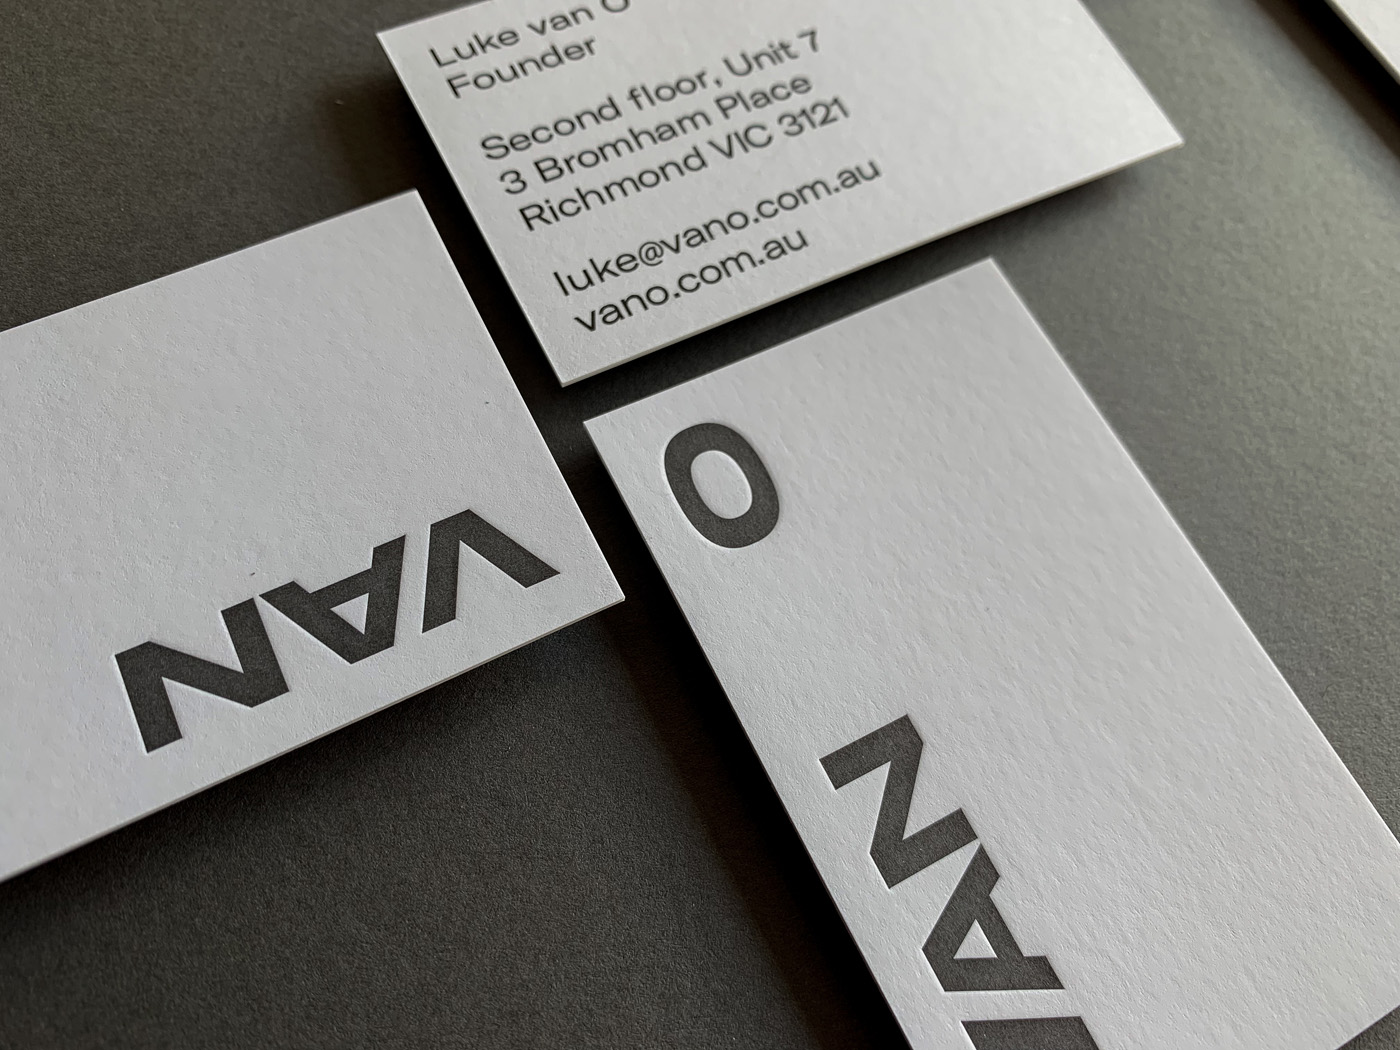 Unique Letterpress Business Cards for Van O on Curious Matter Curious Skin 3